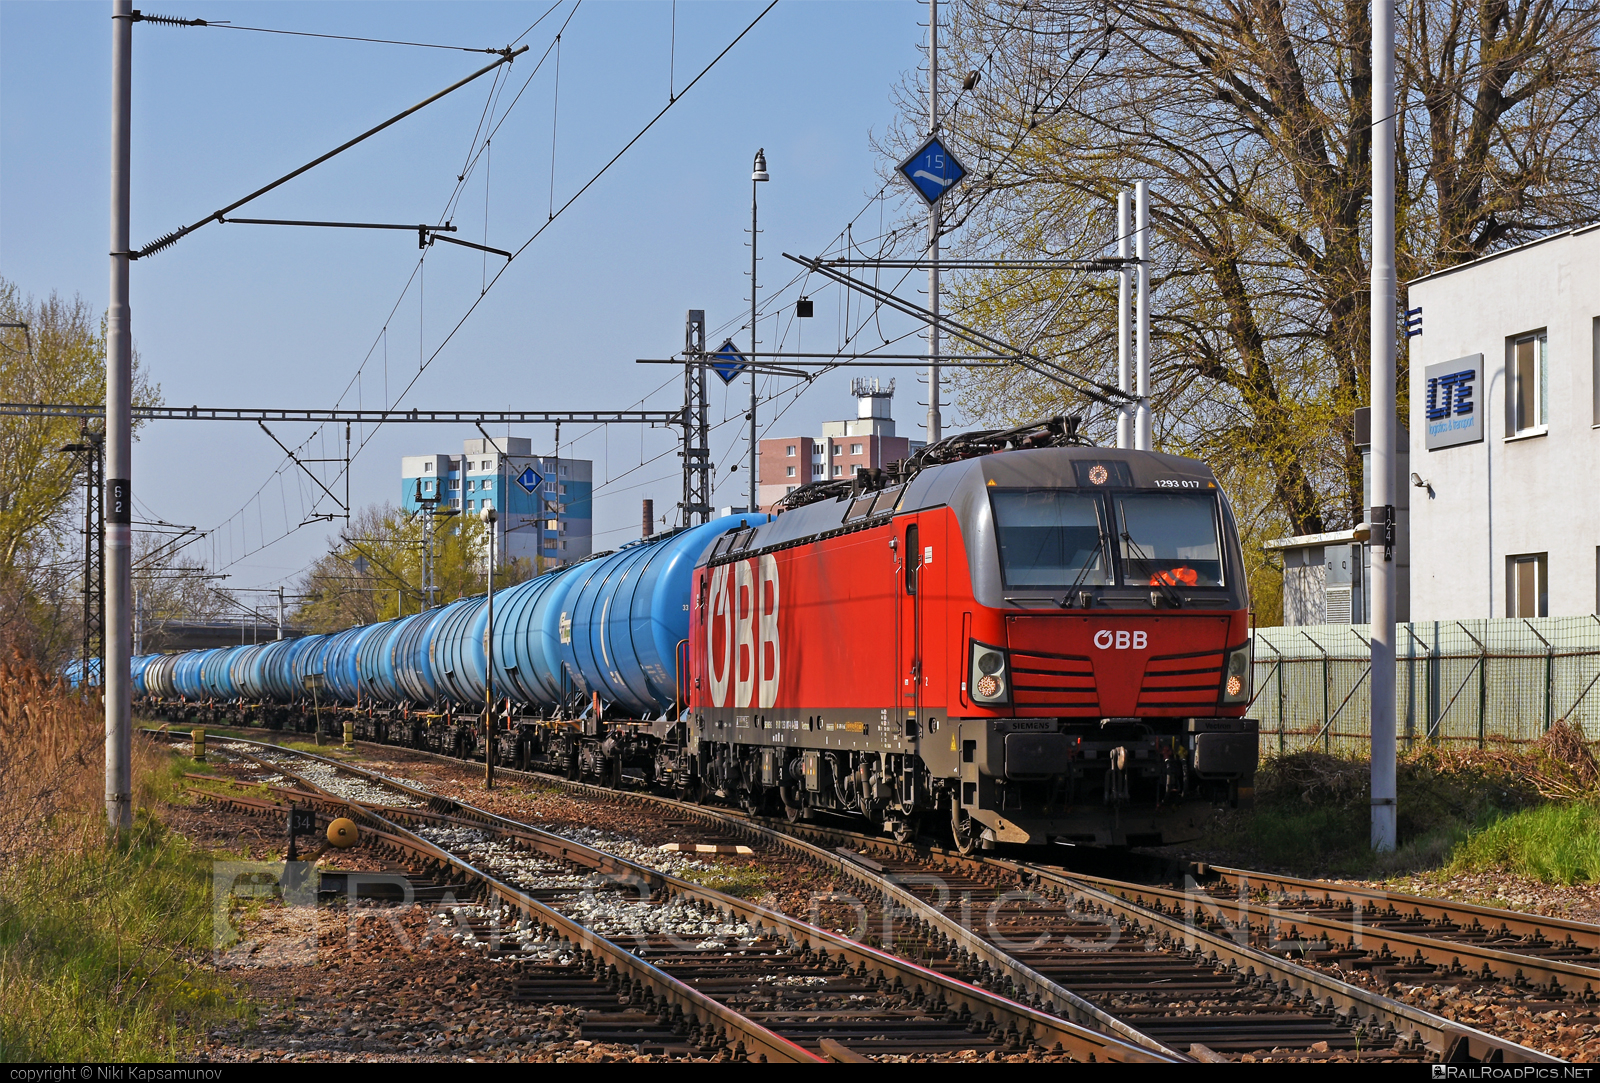 Siemens Vectron MS - 1293 017 operated by Rail Cargo Austria AG #kesselwagen #obb #osterreichischebundesbahnen #rcw #siemens #siemensvectron #siemensvectronms #tankwagon #vectron #vectronms